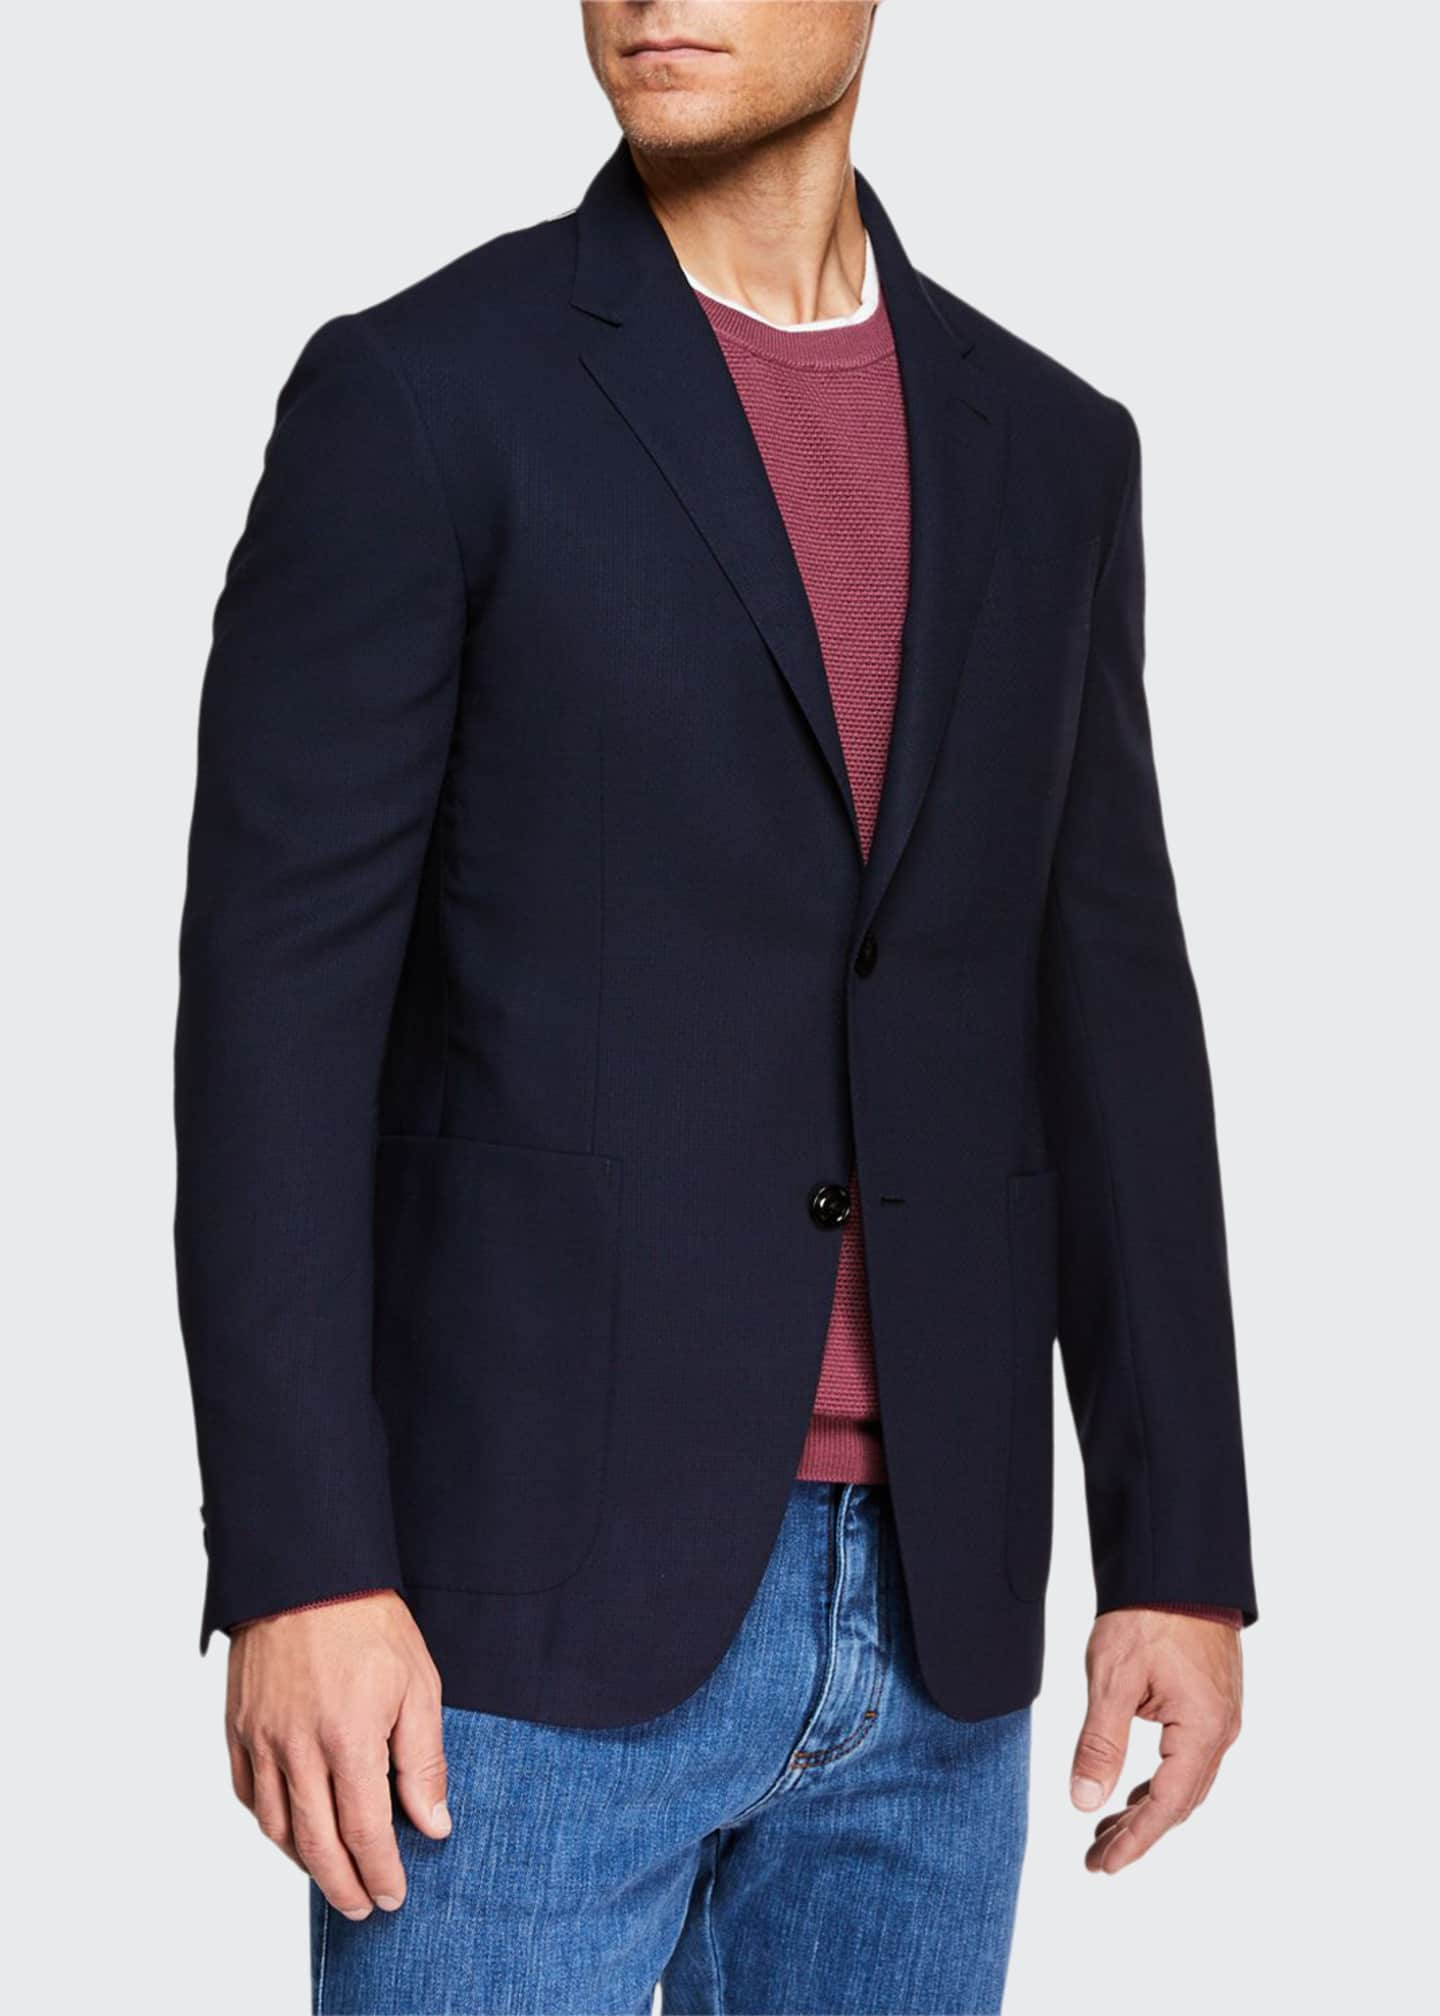 Image 1 of 3: Men's Packaway Wool Two-Button Jacket